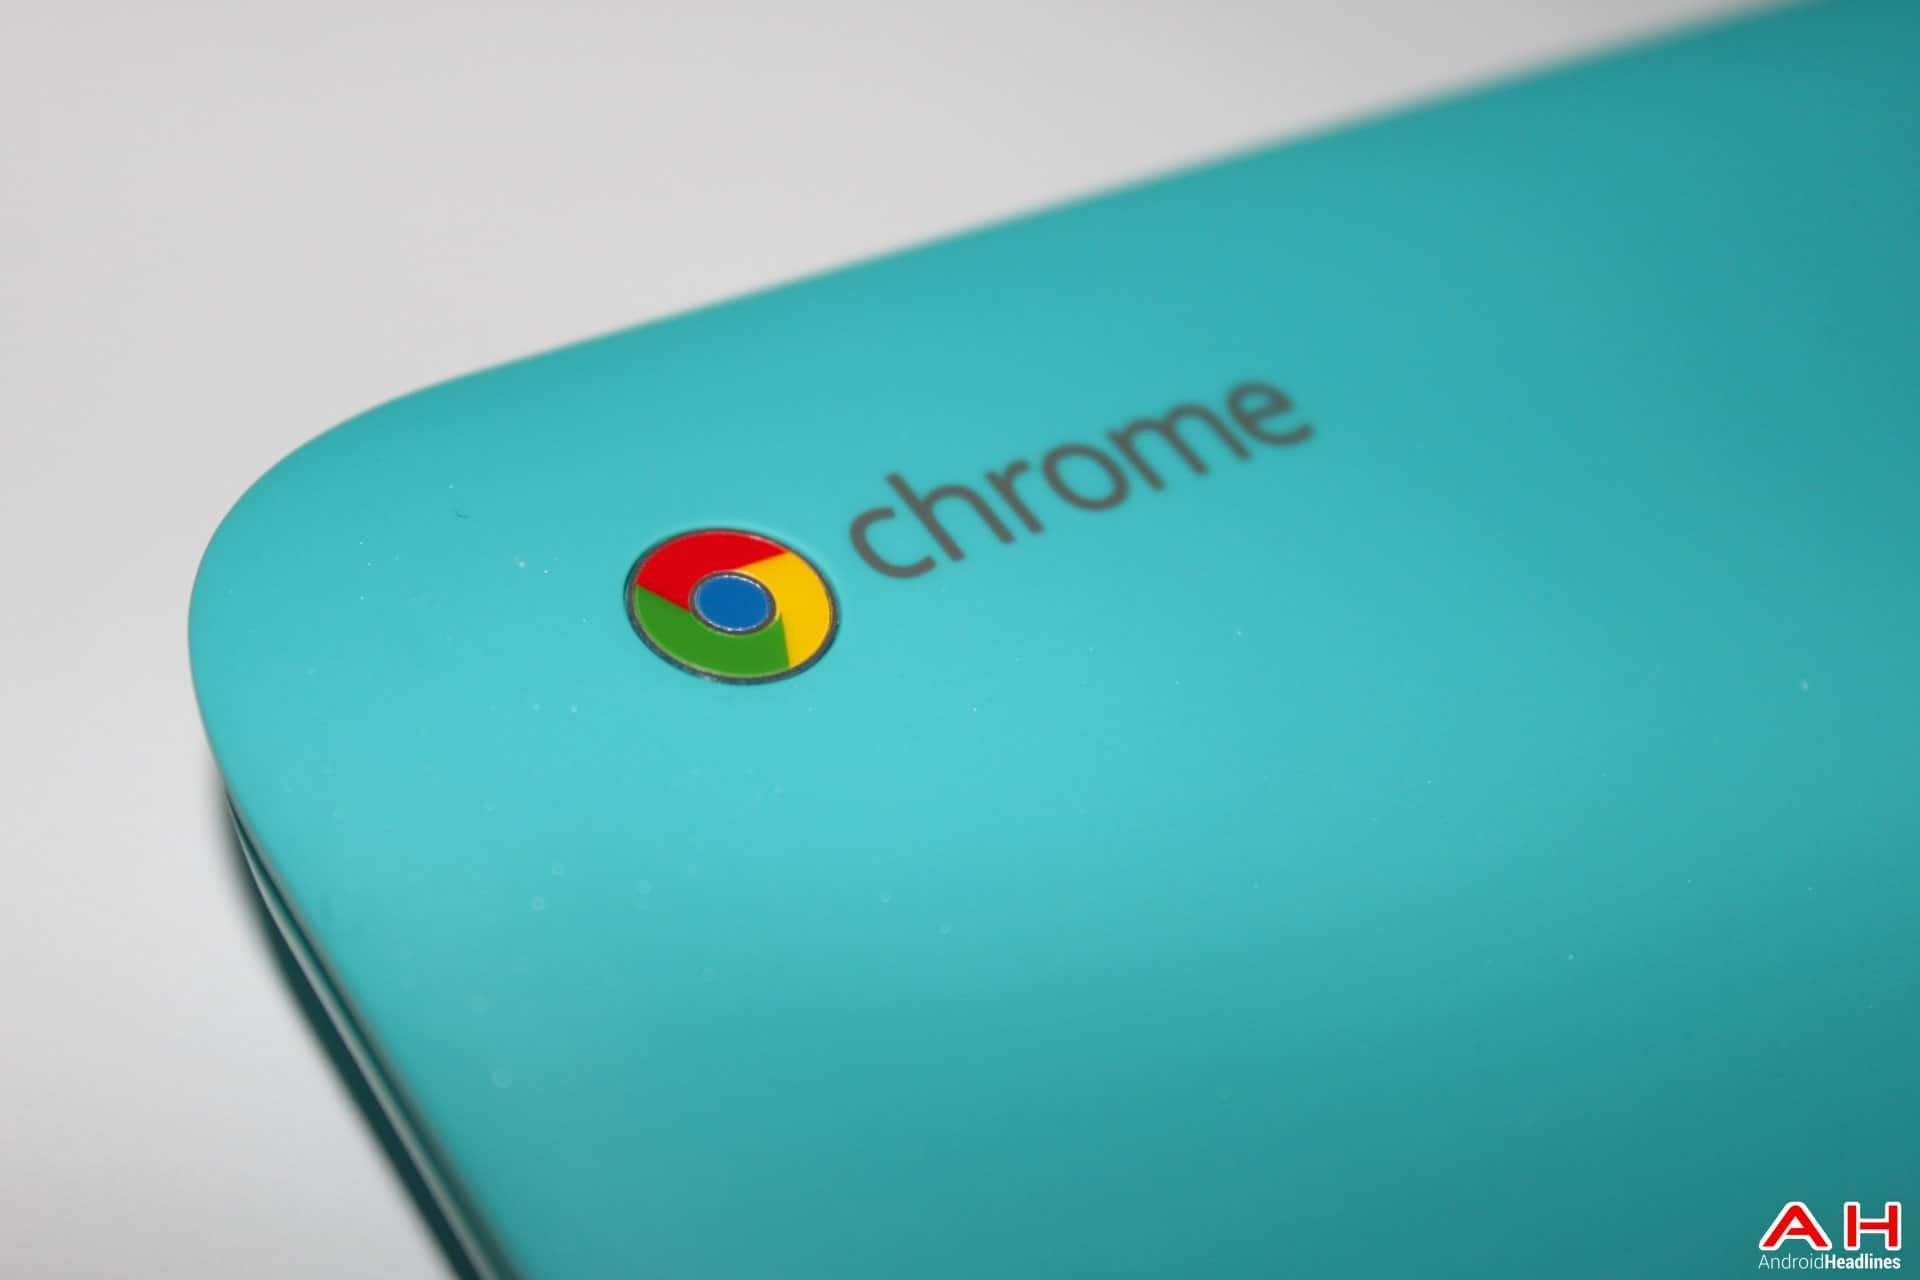 Chromebook Sales in The US on The Rise Claiming 35% of All Notebooks Sold (B2B)